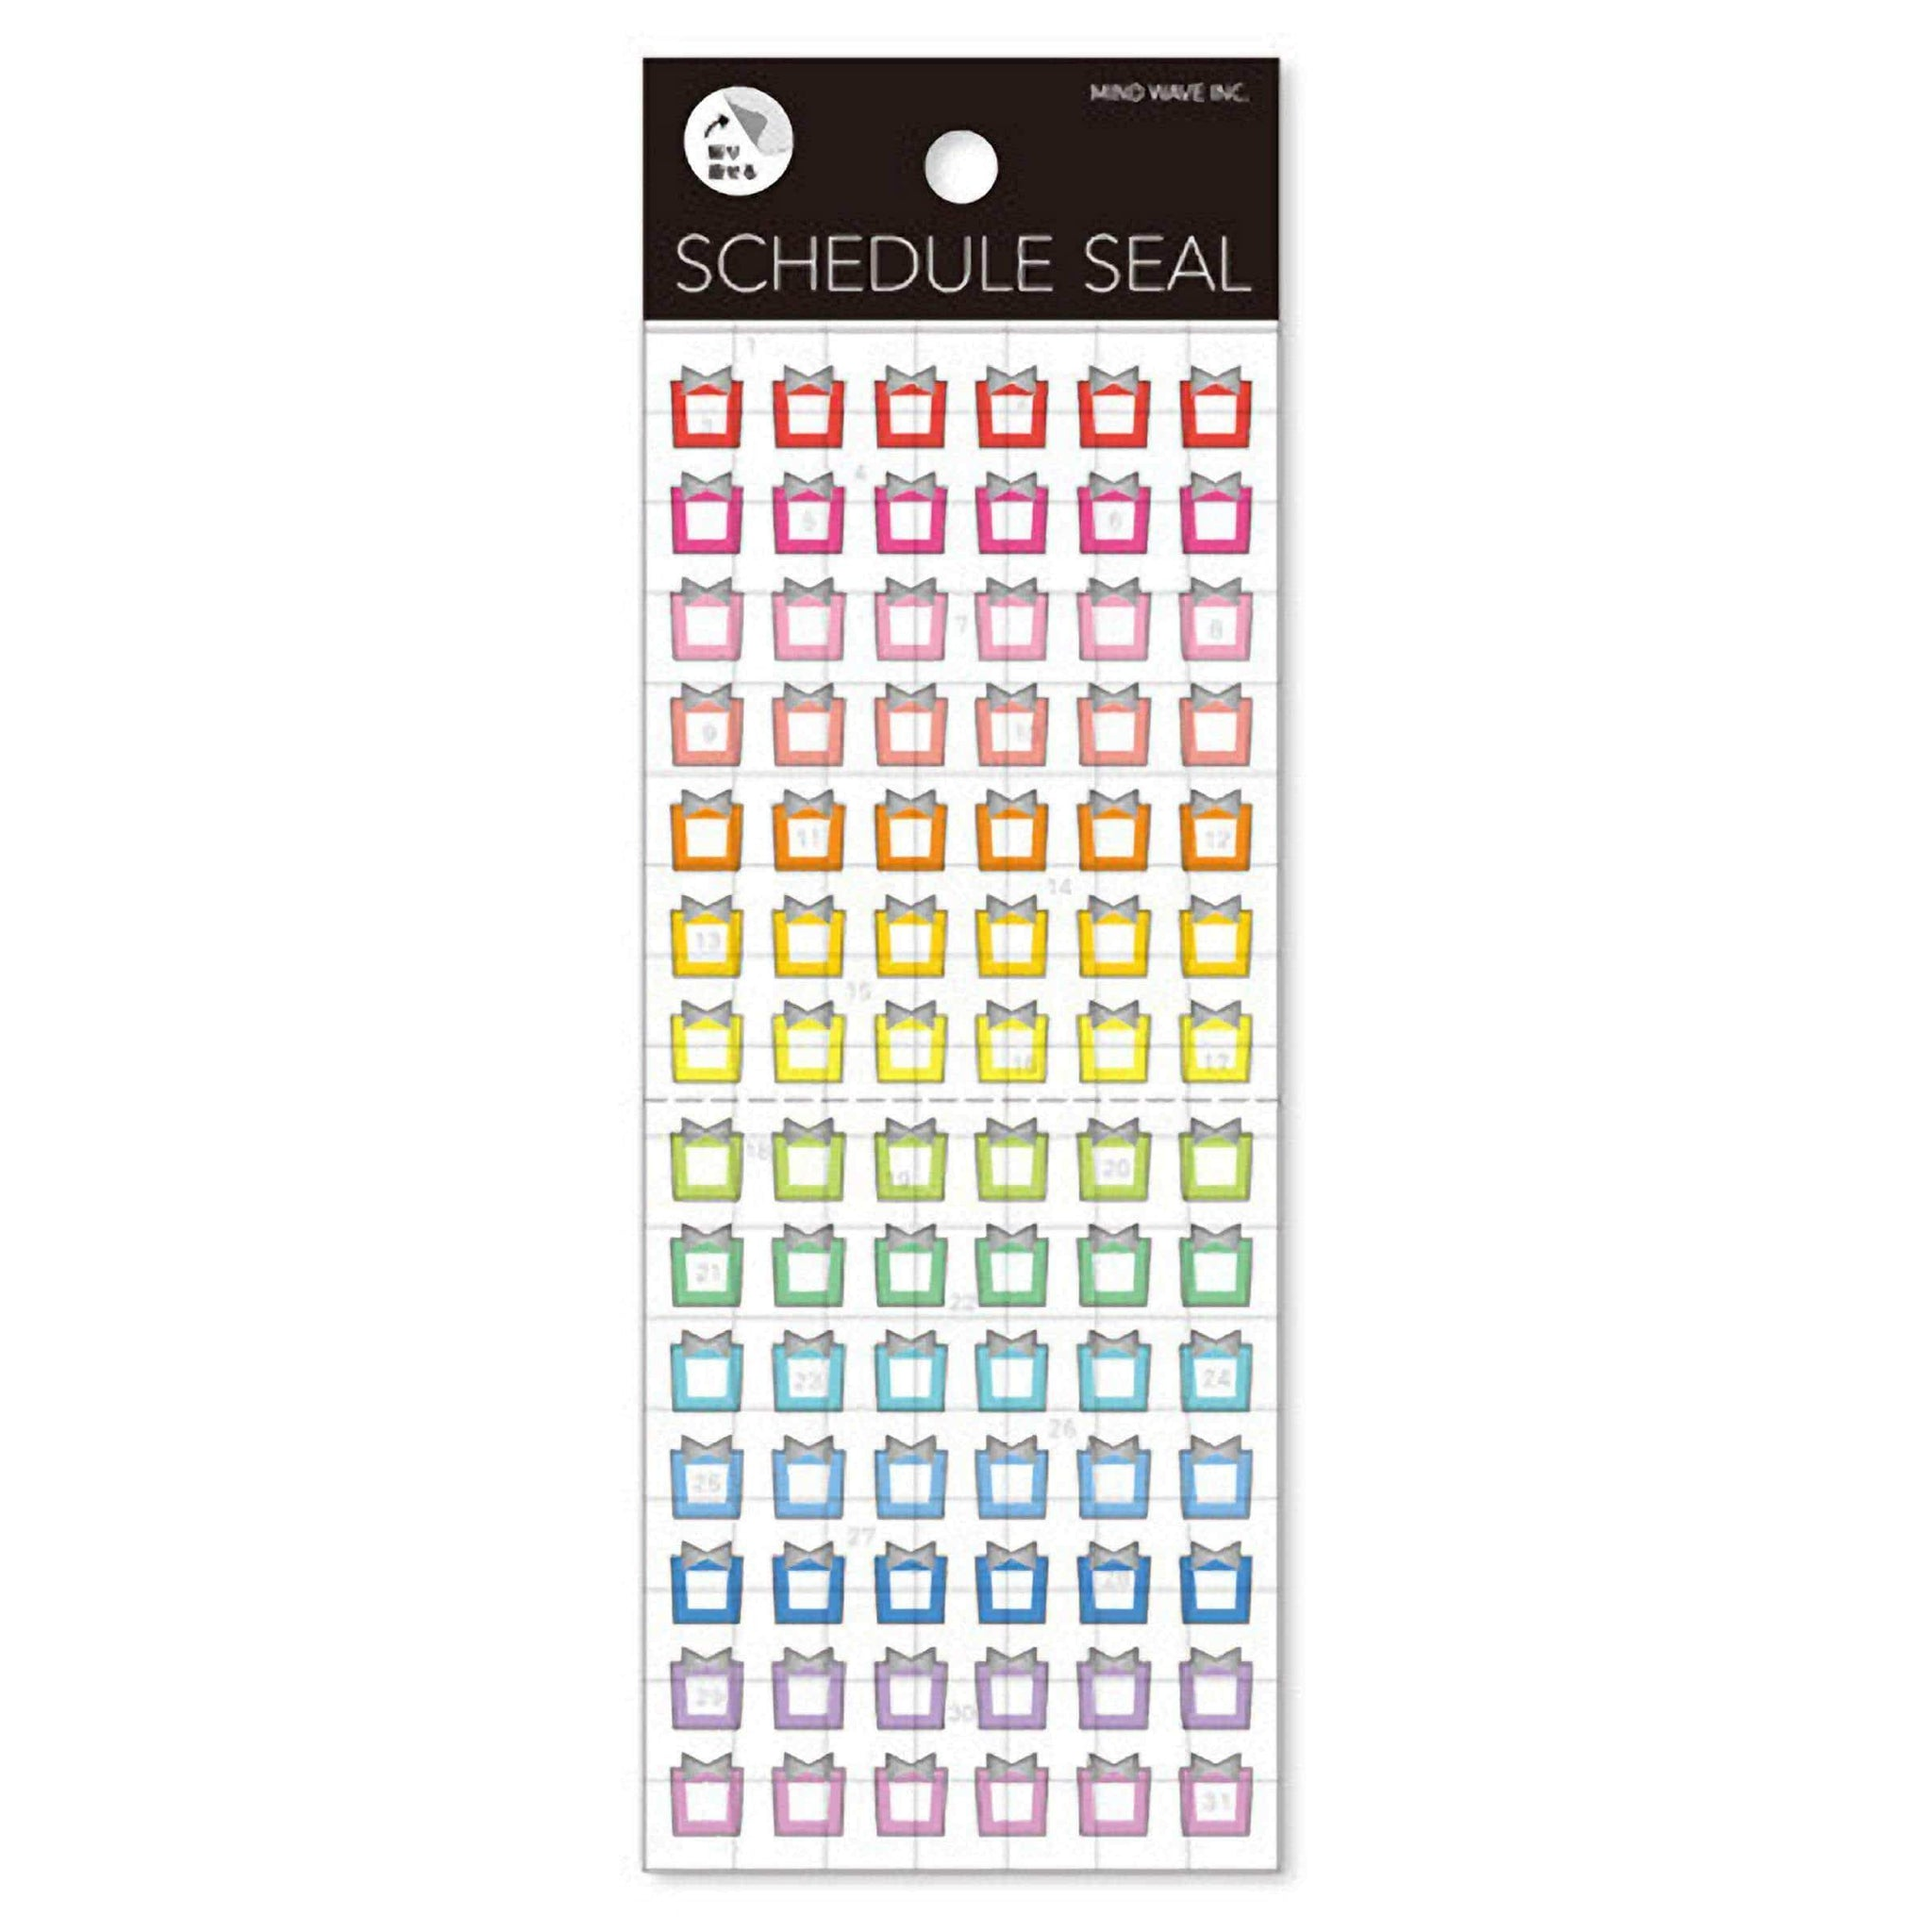 Mind Wave Date Frames Date Markers Schedule Frames Schedule Markers Planner Stickers - The Stationery Life!